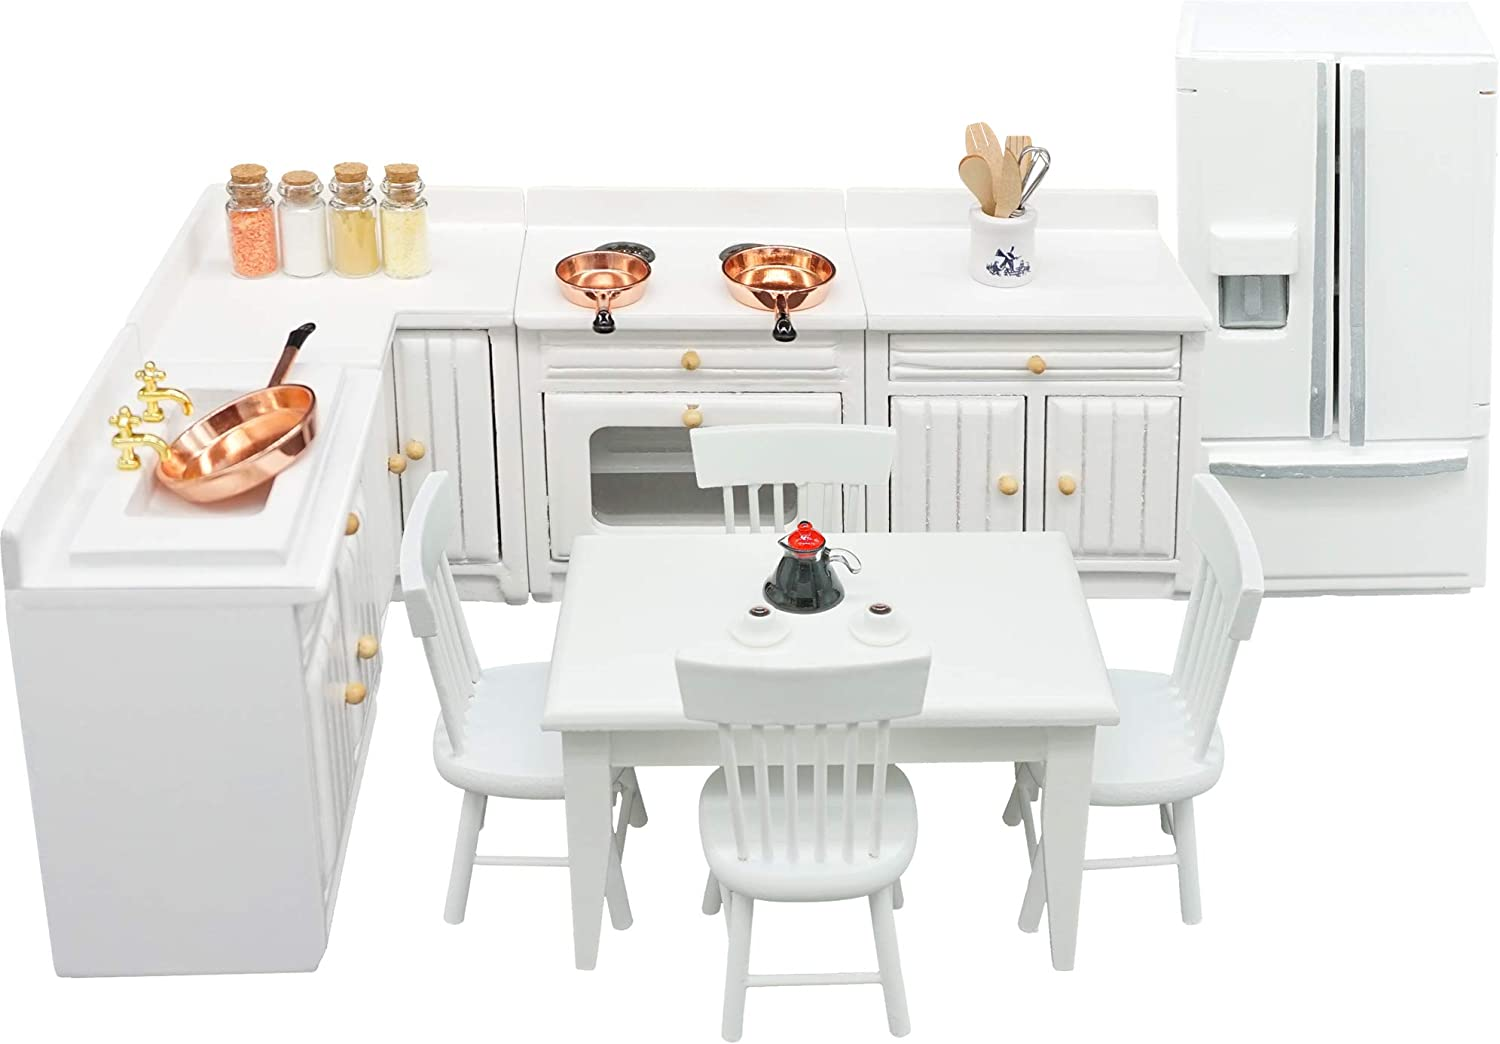 SAMCAMI Dollhouse Furniture Kitchen Set (26 pcs) - Freely Combined Kitchen Cabinets, Dining Table with Chairs, Refrigerator and Other Accessories for 1 12 Scale Miniature Dollhouse (White)